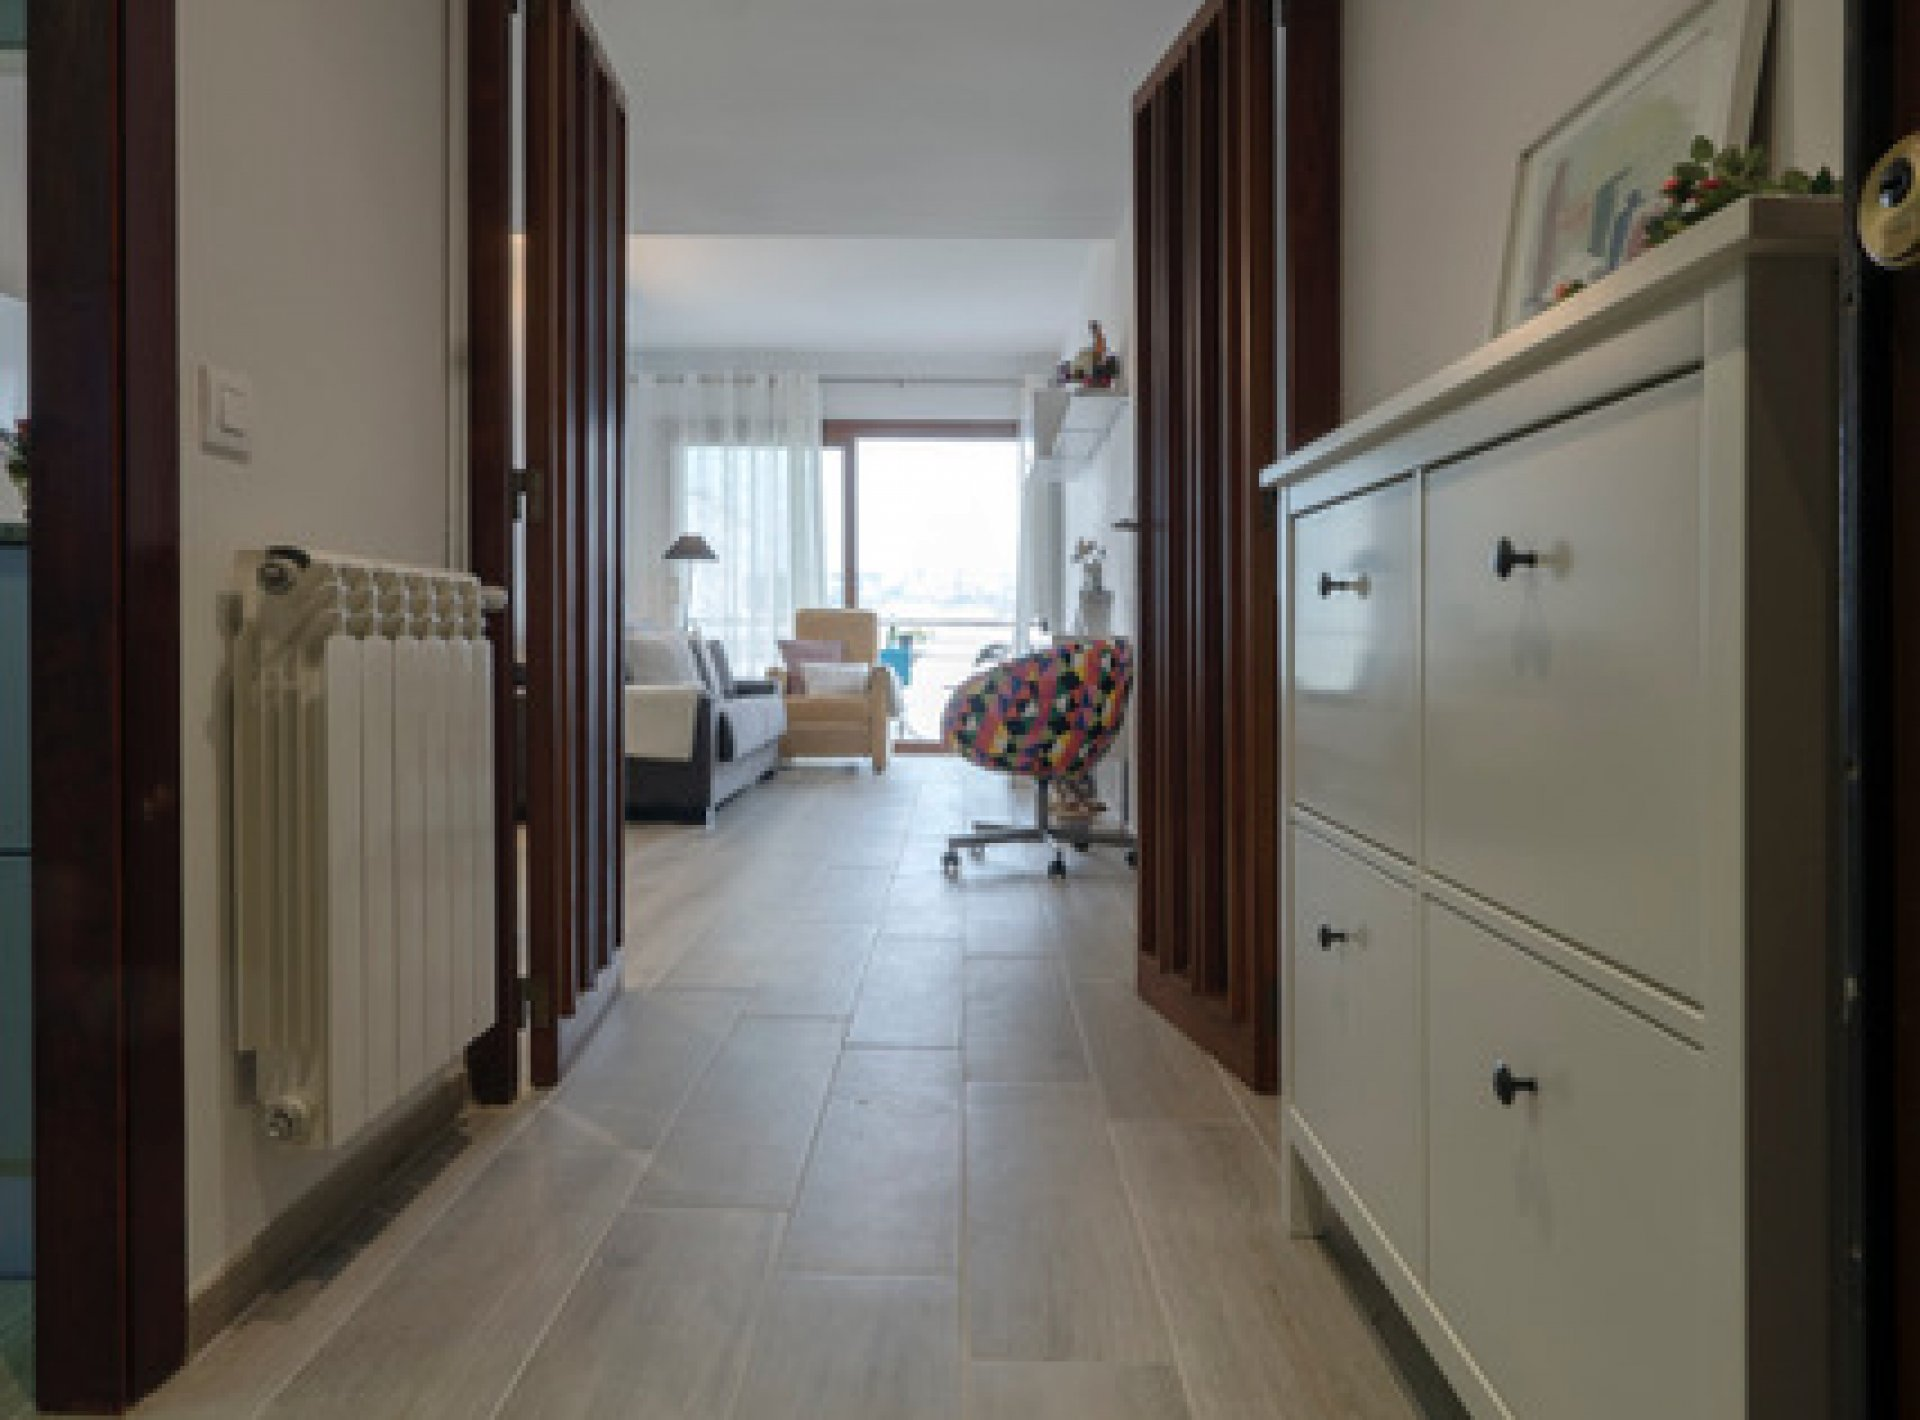 Apartamento Fleming 5, recién reformado ubicado en el centro de Sitges - Pet Friendly  by GLOBALSITGES